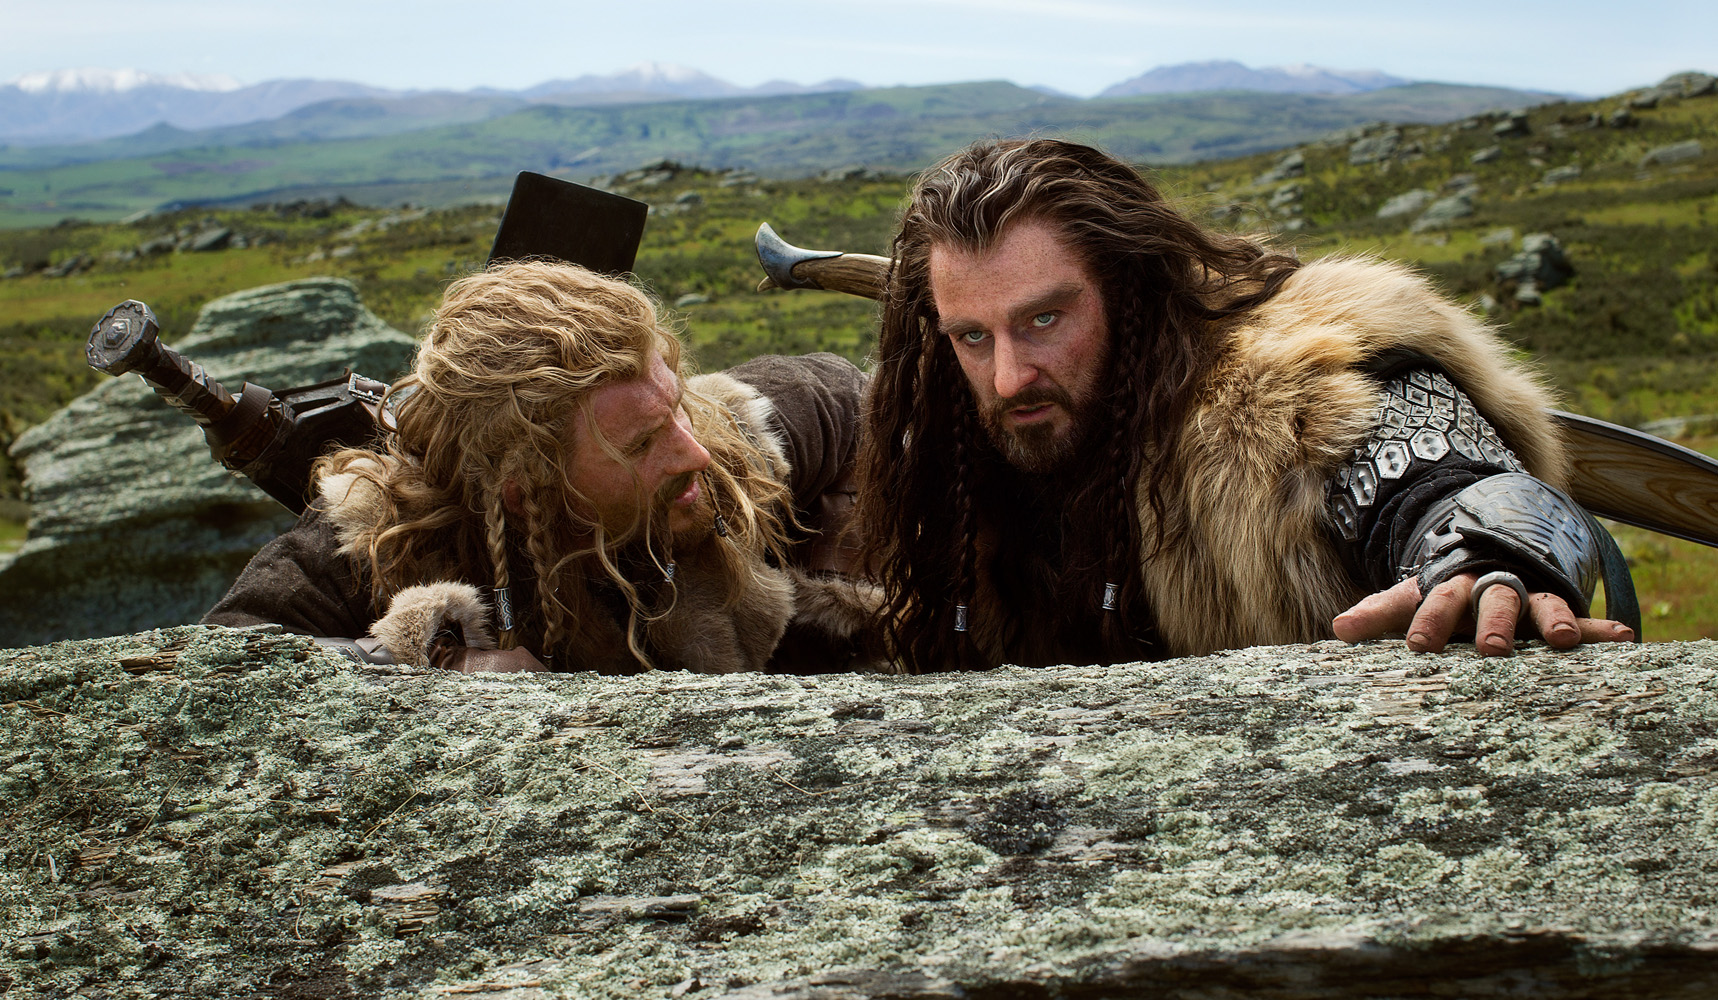 Dean O'Gorman as Fili and Richard Armitage as Thorin in 'The Hobbit: An Unexpected Journey'